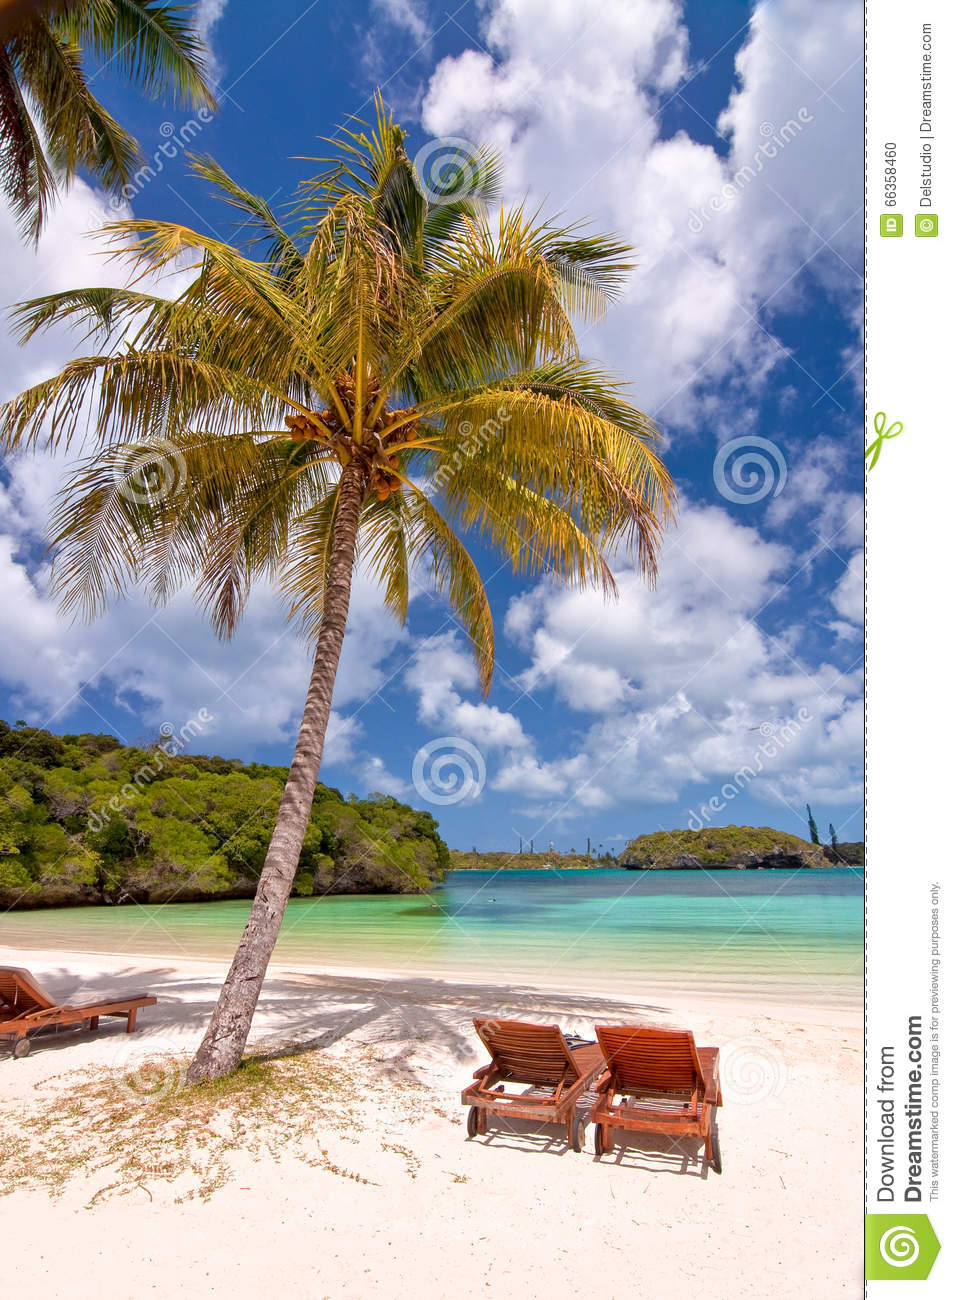 Loungers under a palm tree on a tropical beach